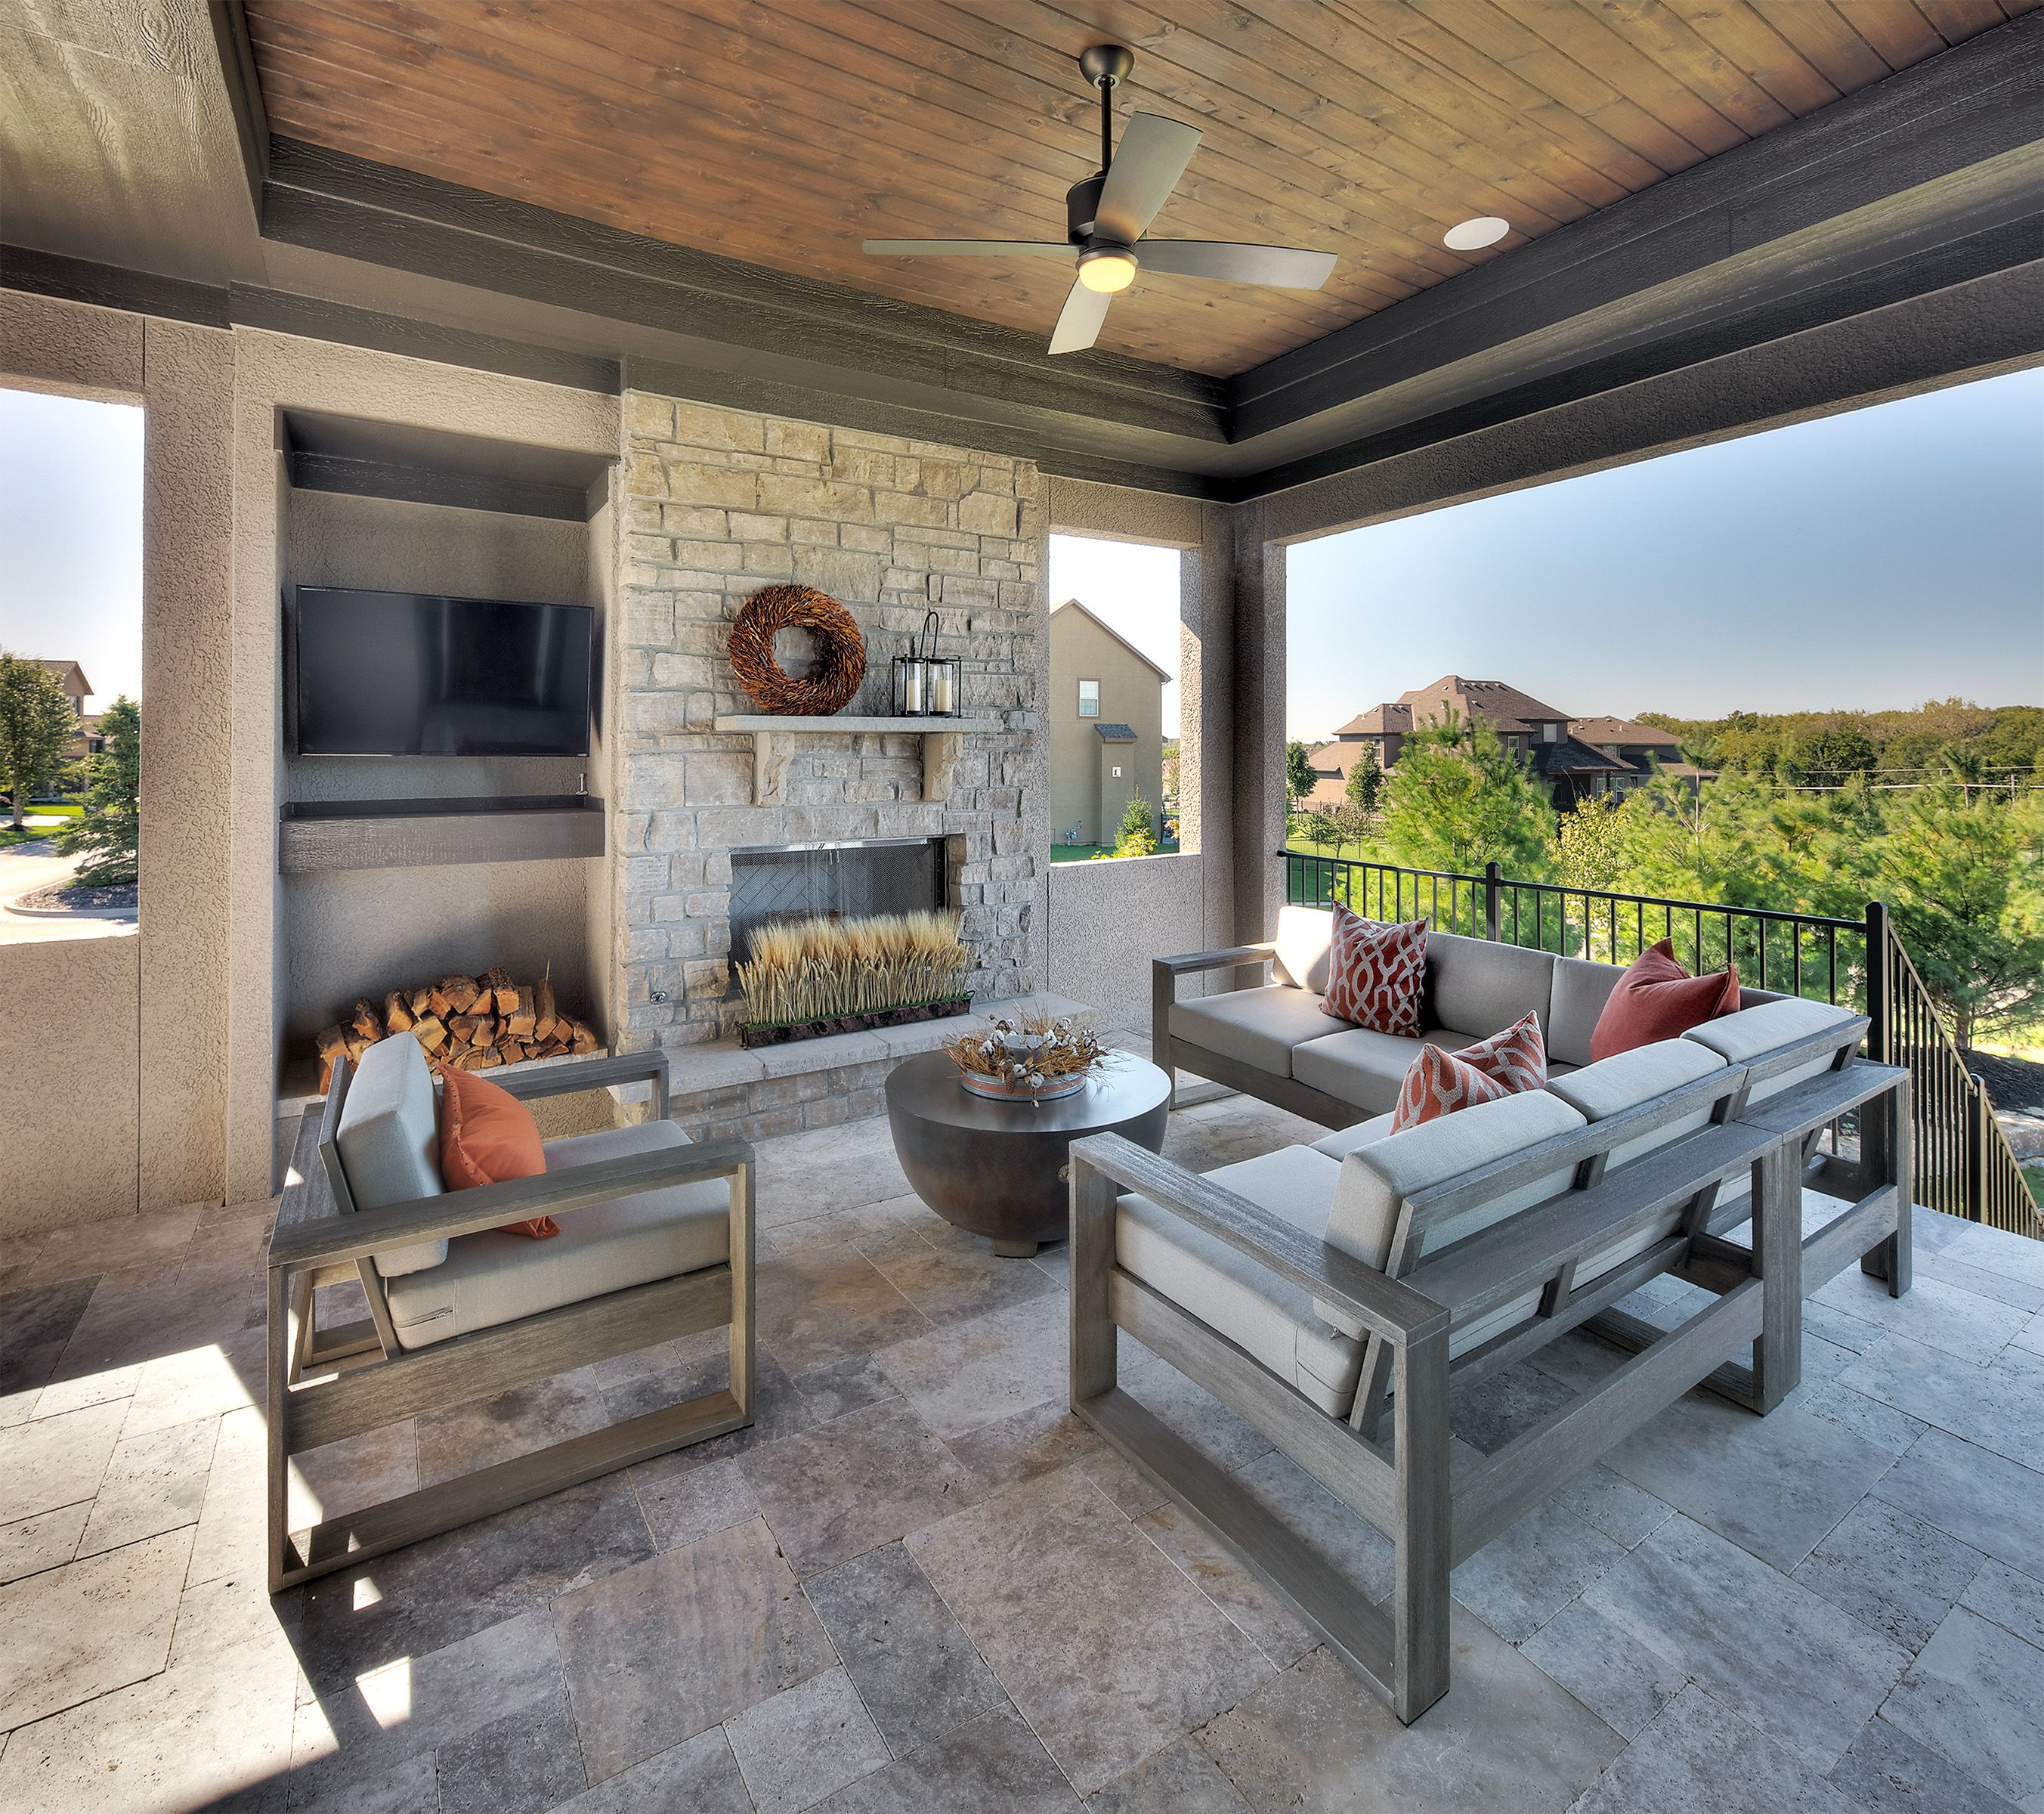 Covered Lanai, Outdoor Living, Outdoor Fireplace, Patio